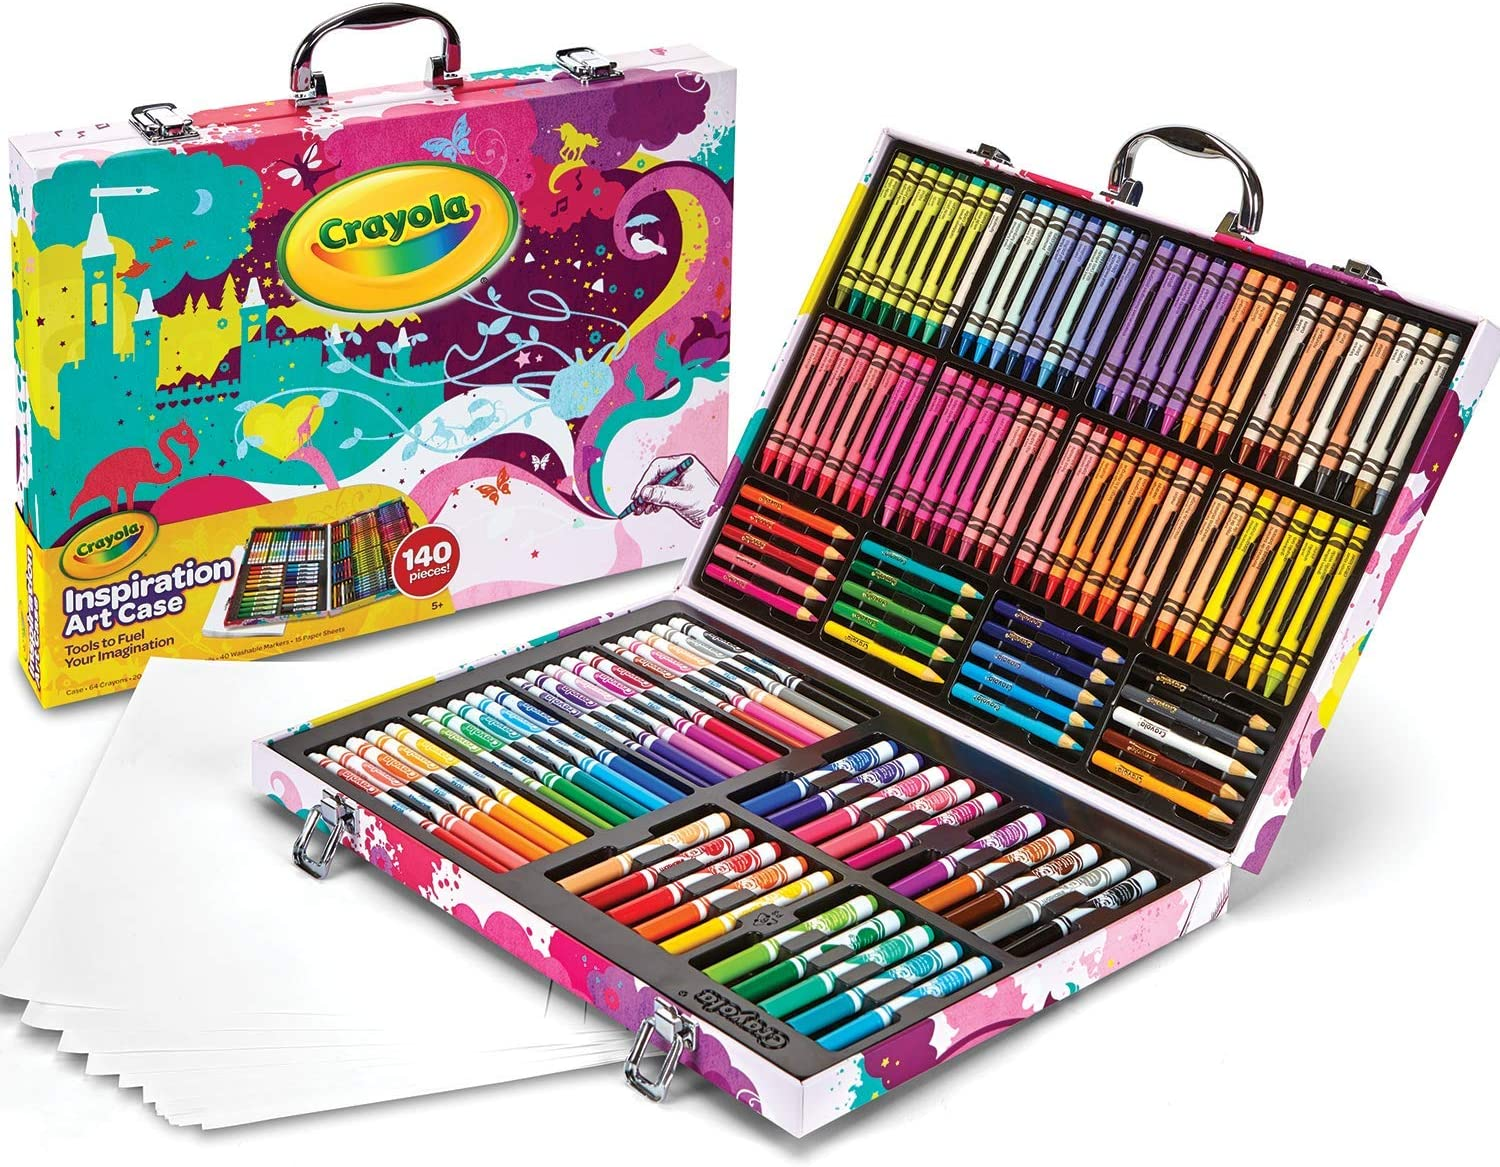 Crayola Inspiration Art Case Coloring Set, Gift for Kids Age 5+, Pink, 140 Count: Toys & Games